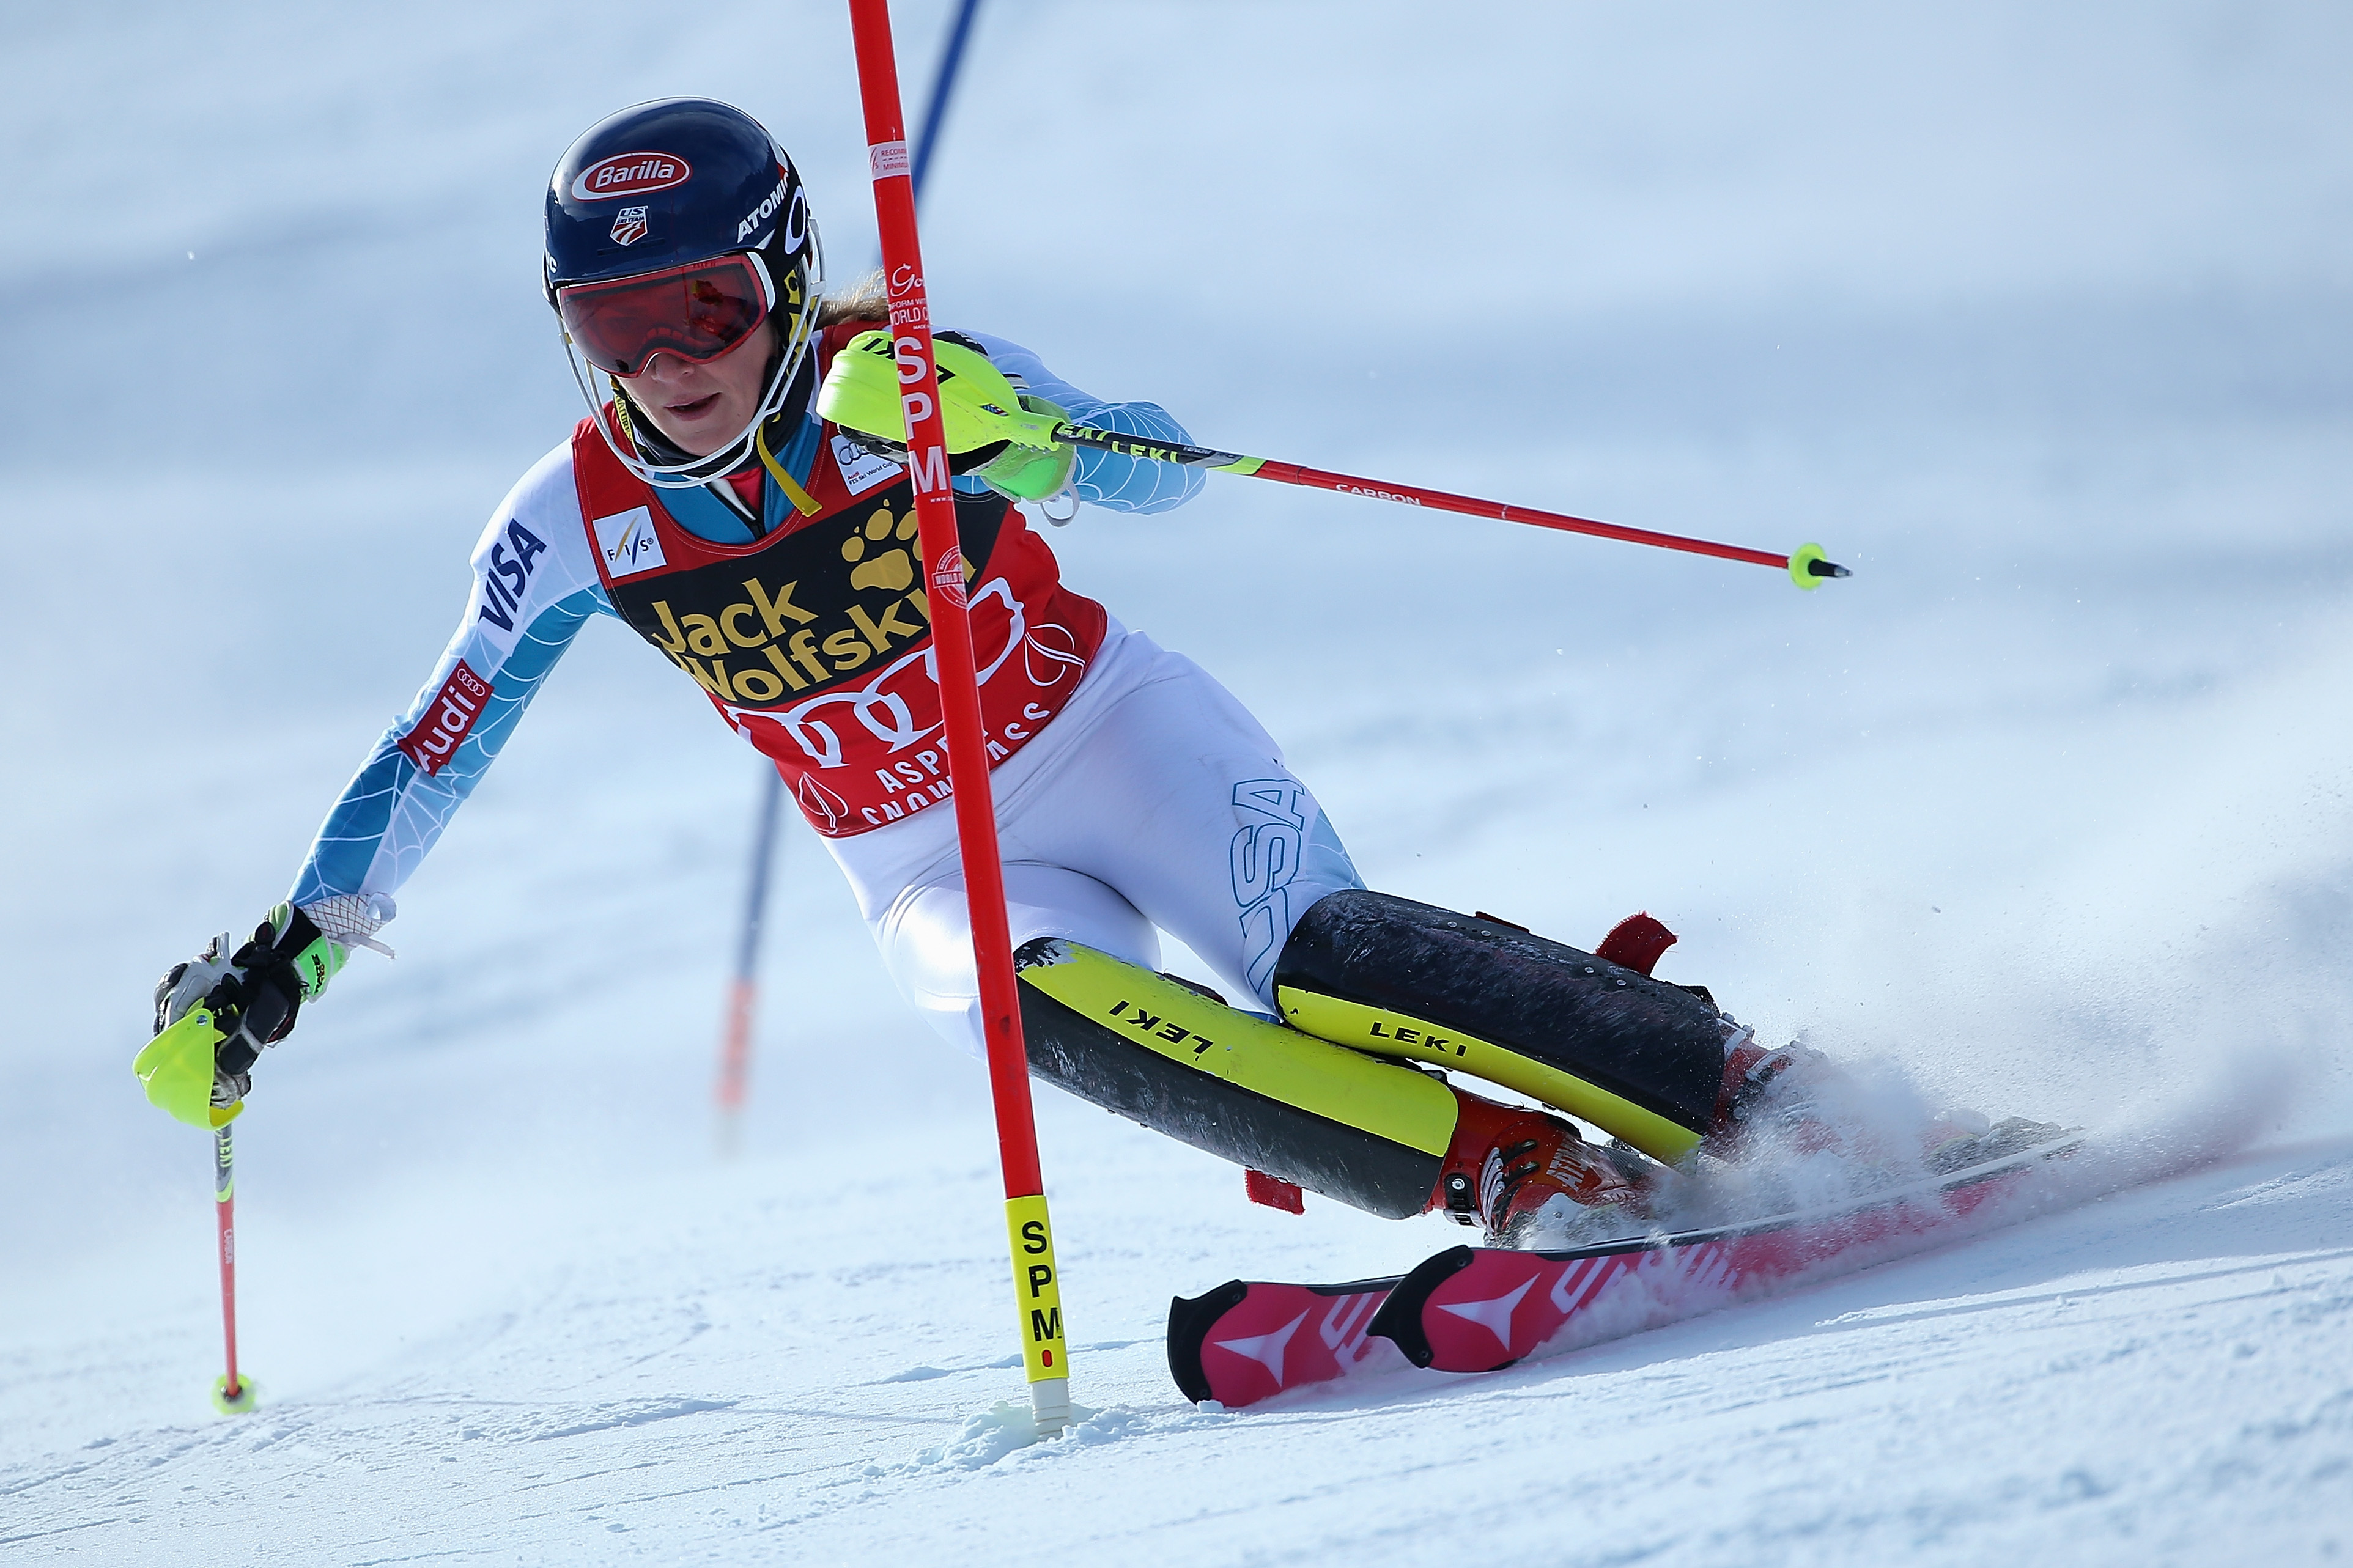 Mikaela Shiffrin of the United States competes in her first run as she skis to victory in slalom during the Adui FIS Women's Alpine Ski World Cup at the Nature Valley Aspen Winternational on November 29, 2015 in Aspen, Colorado. (Photo by Doug Pensinger/Getty Images)